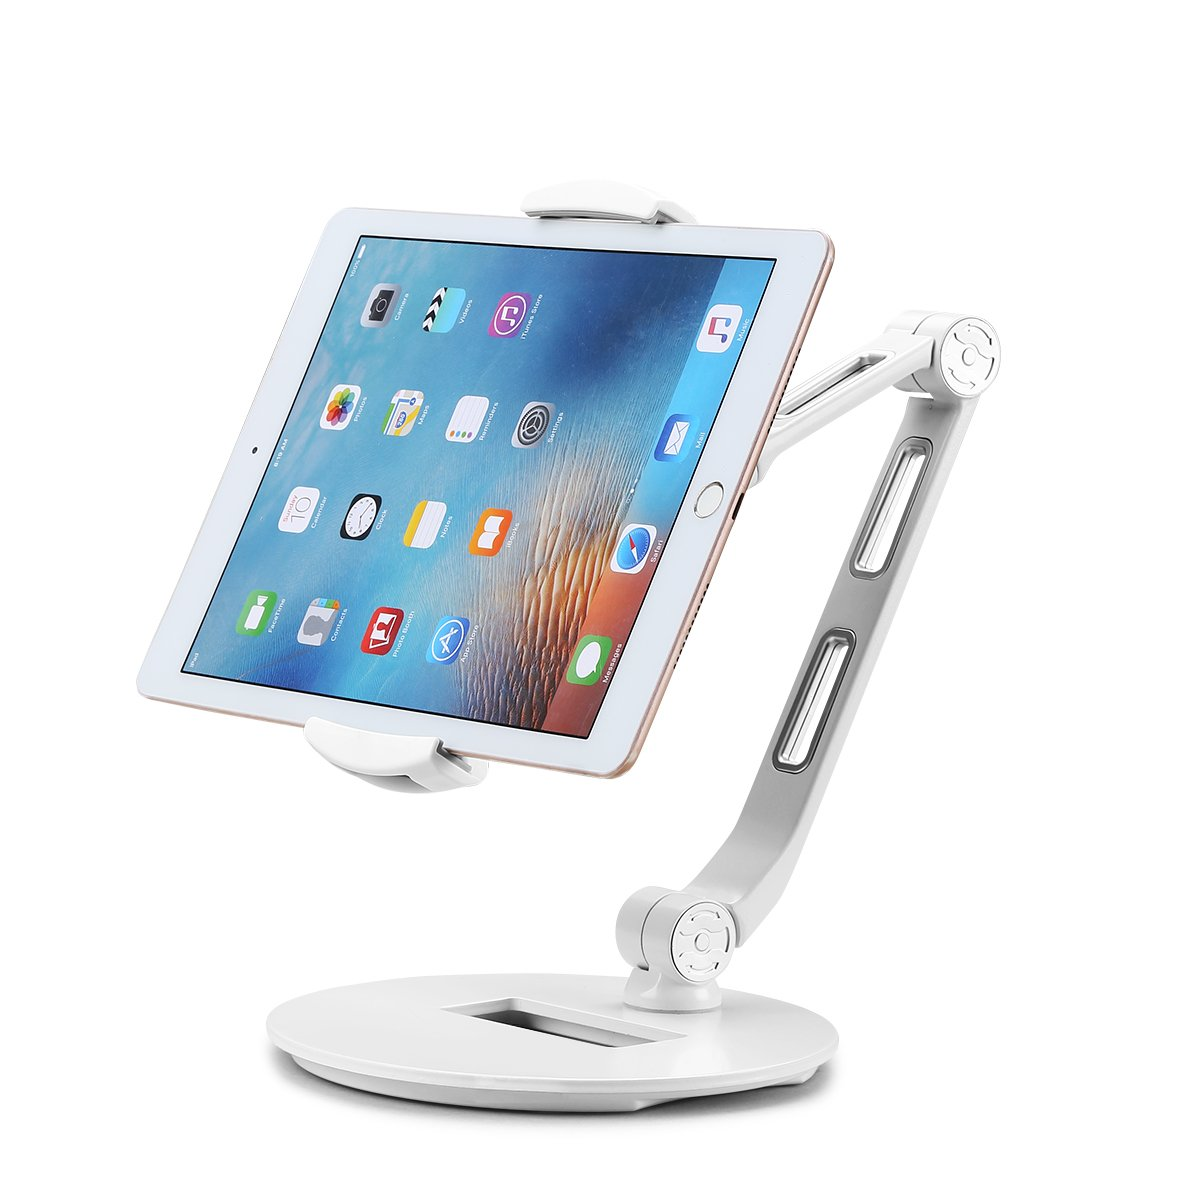 Suptek 360 Degree Adjustable Stand/Holder for Tablets & iPad iPhone Samsung Asus Tablet Smartphone and More up to 13 inches White YF208DW by suptek